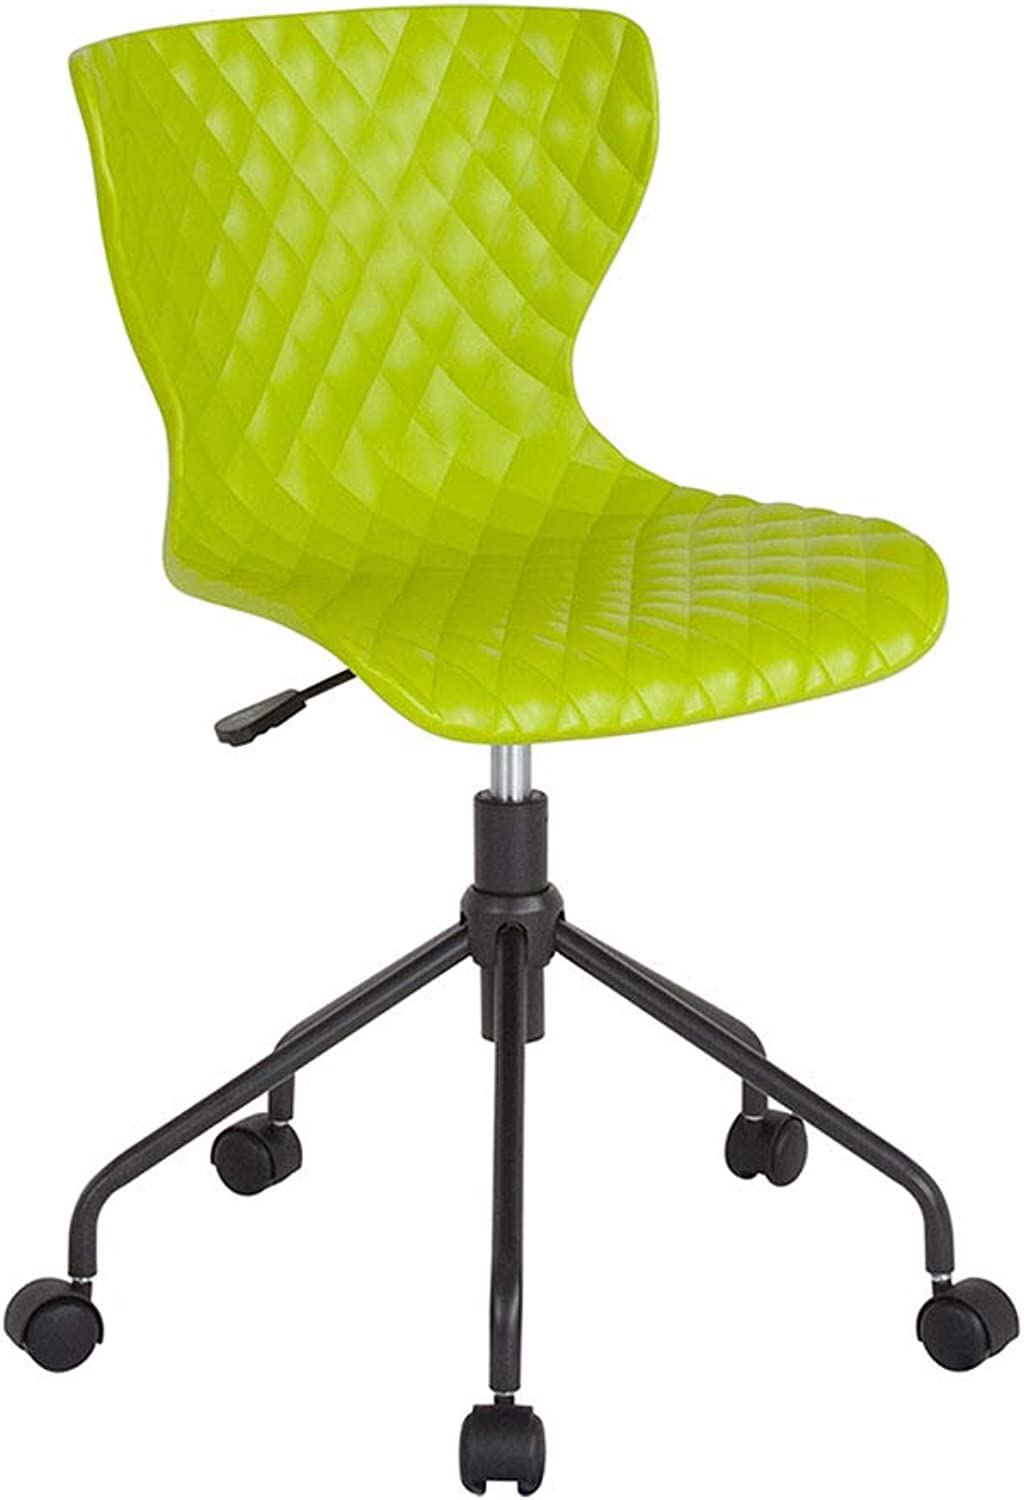 Offex Home Office Contemporary Design Curved Back Plastic Task Chair, Citrus Green